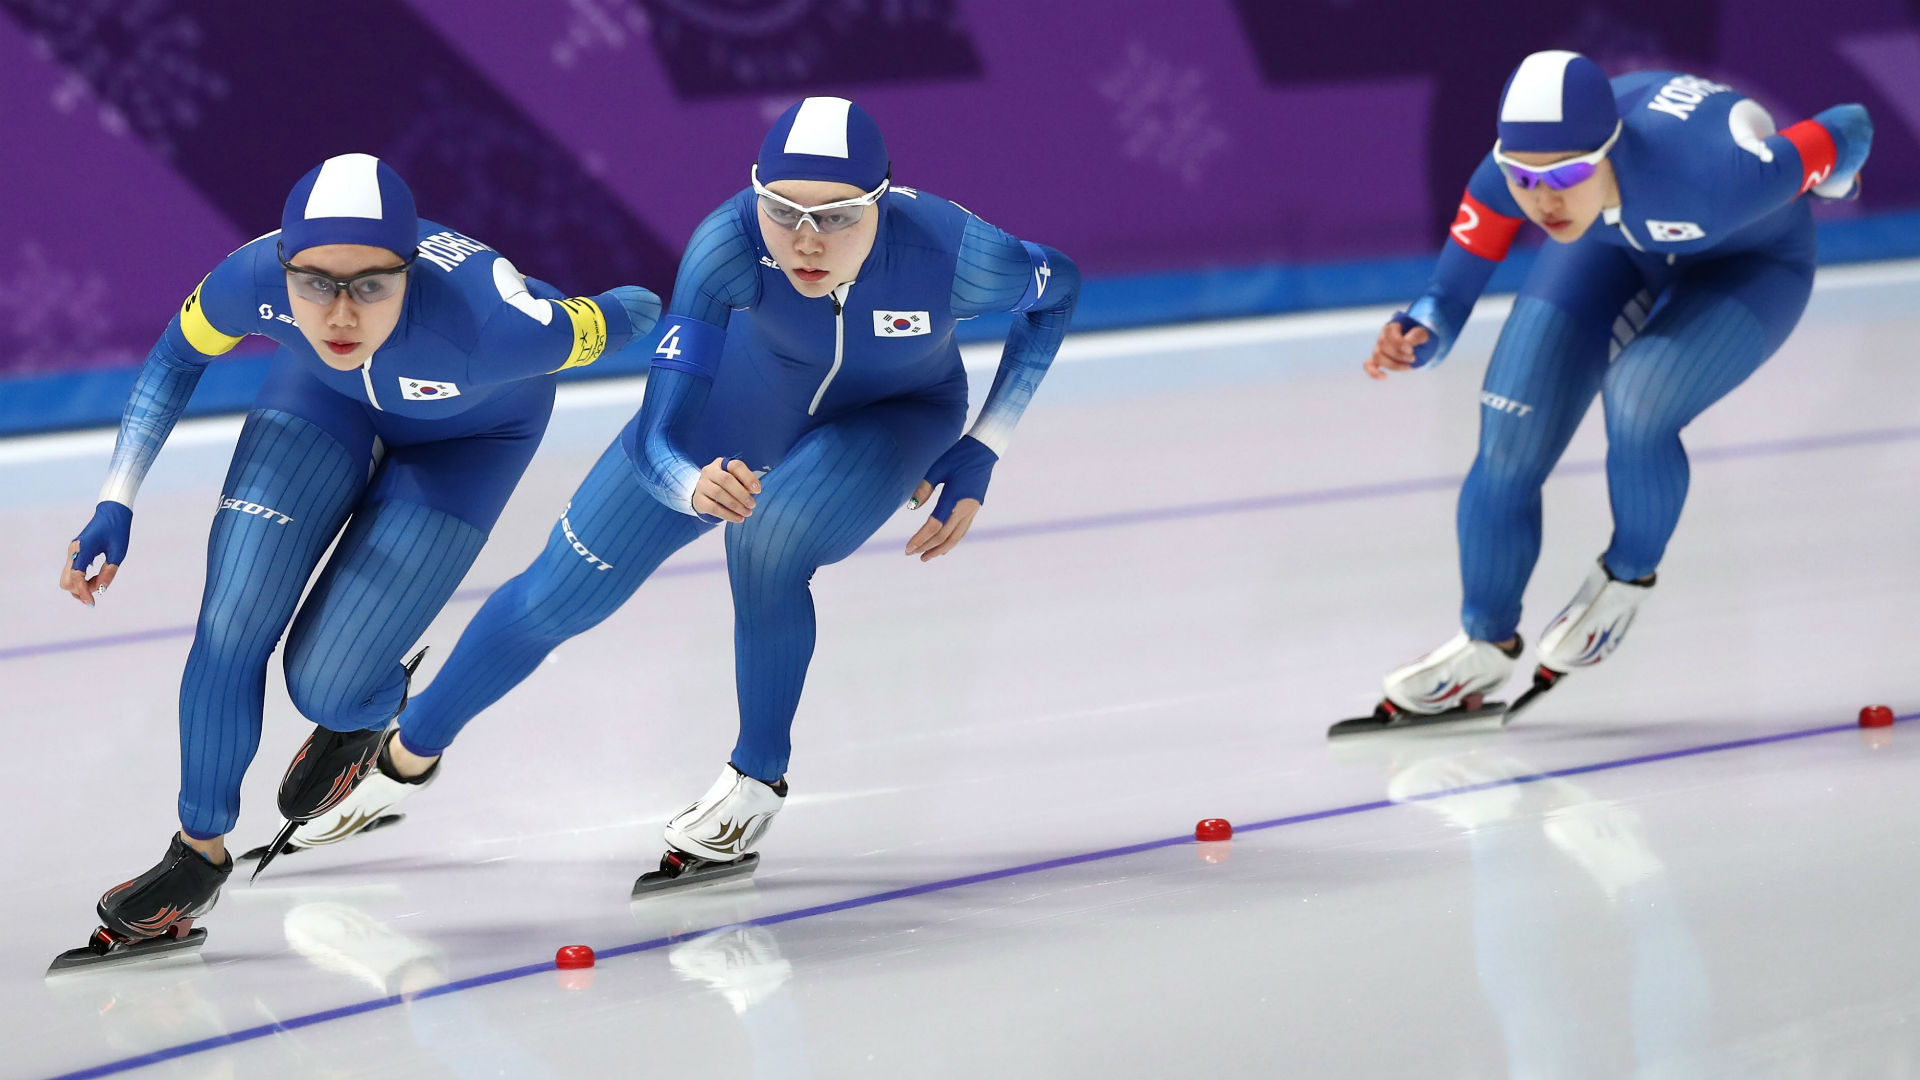 McFlurries for breakfast for North Korean Olympians